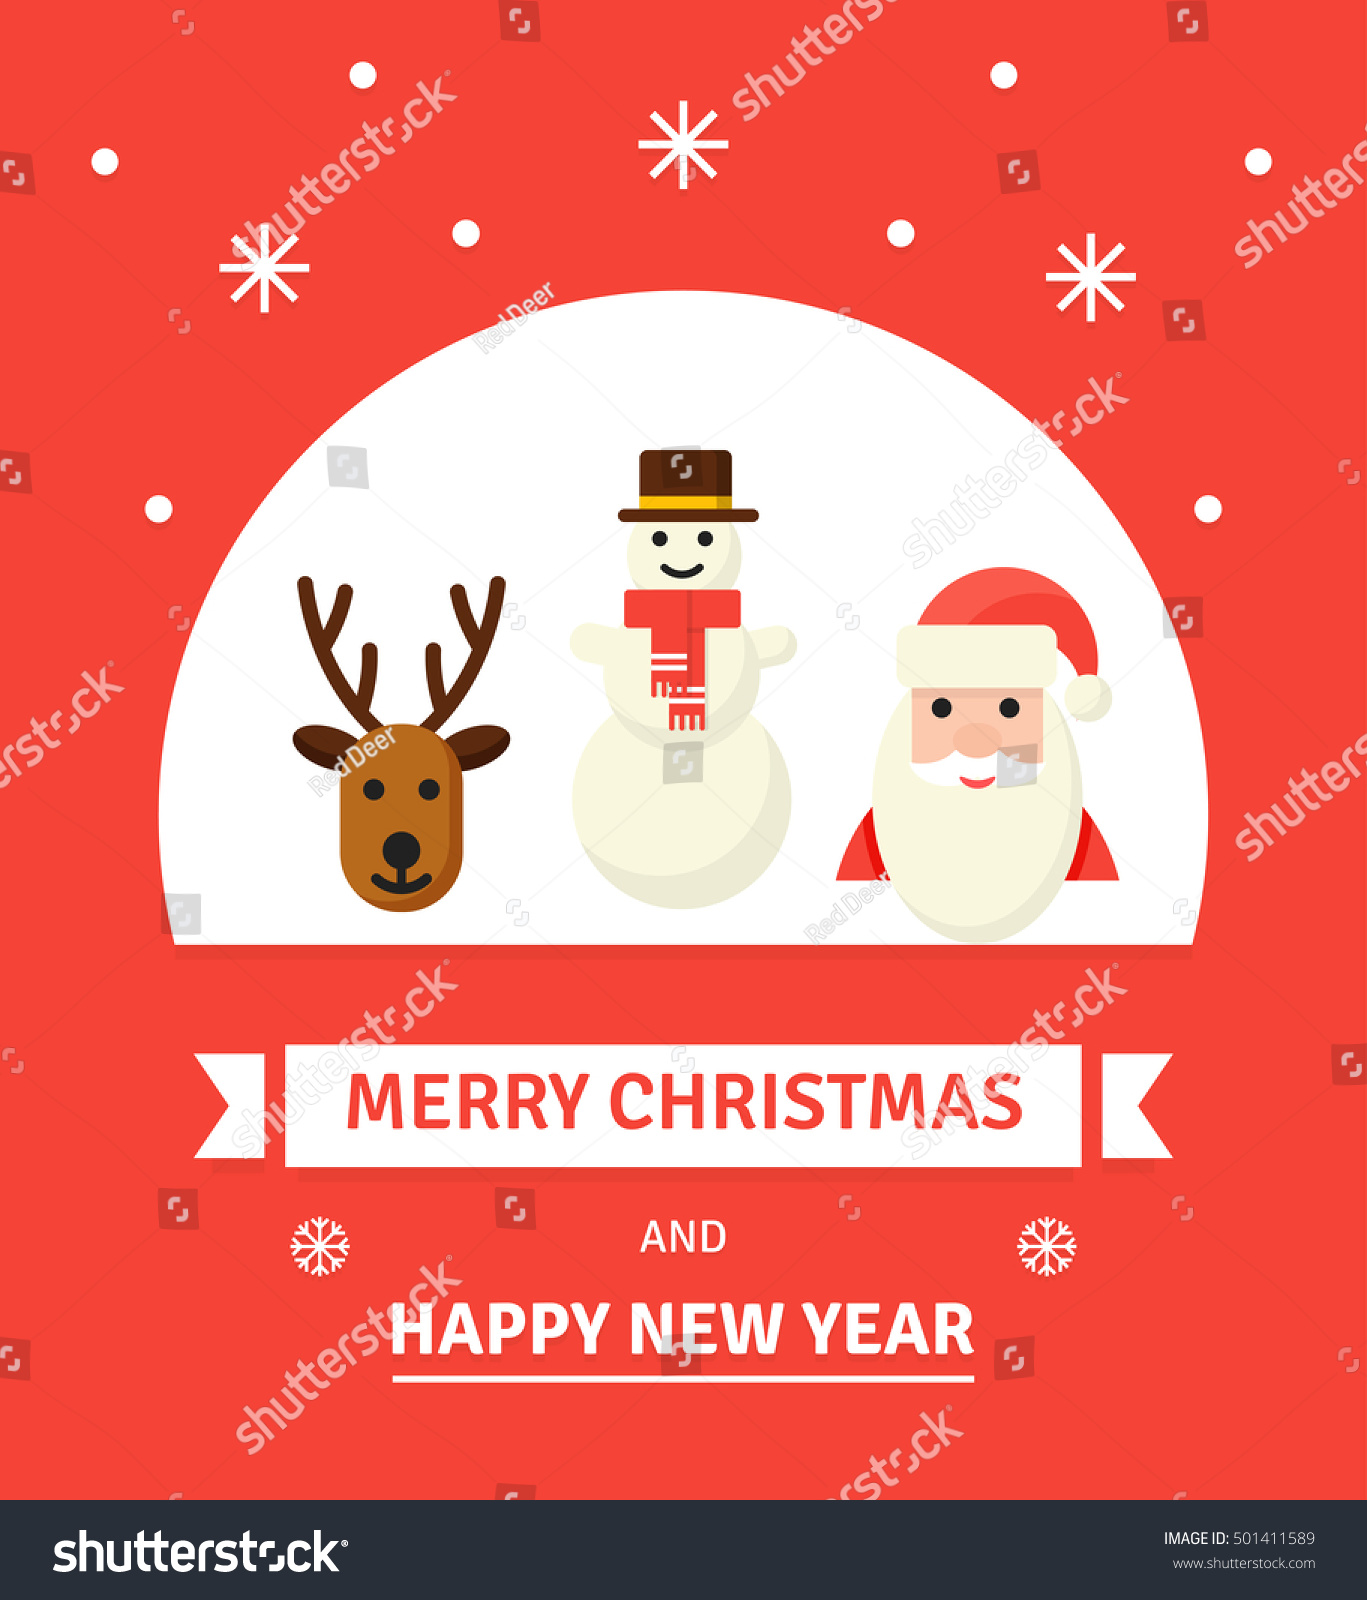 Greeting christmas new year card characters stock vector 501411589 greeting christmas new year card characters stock vector 501411589 shutterstock kristyandbryce Choice Image